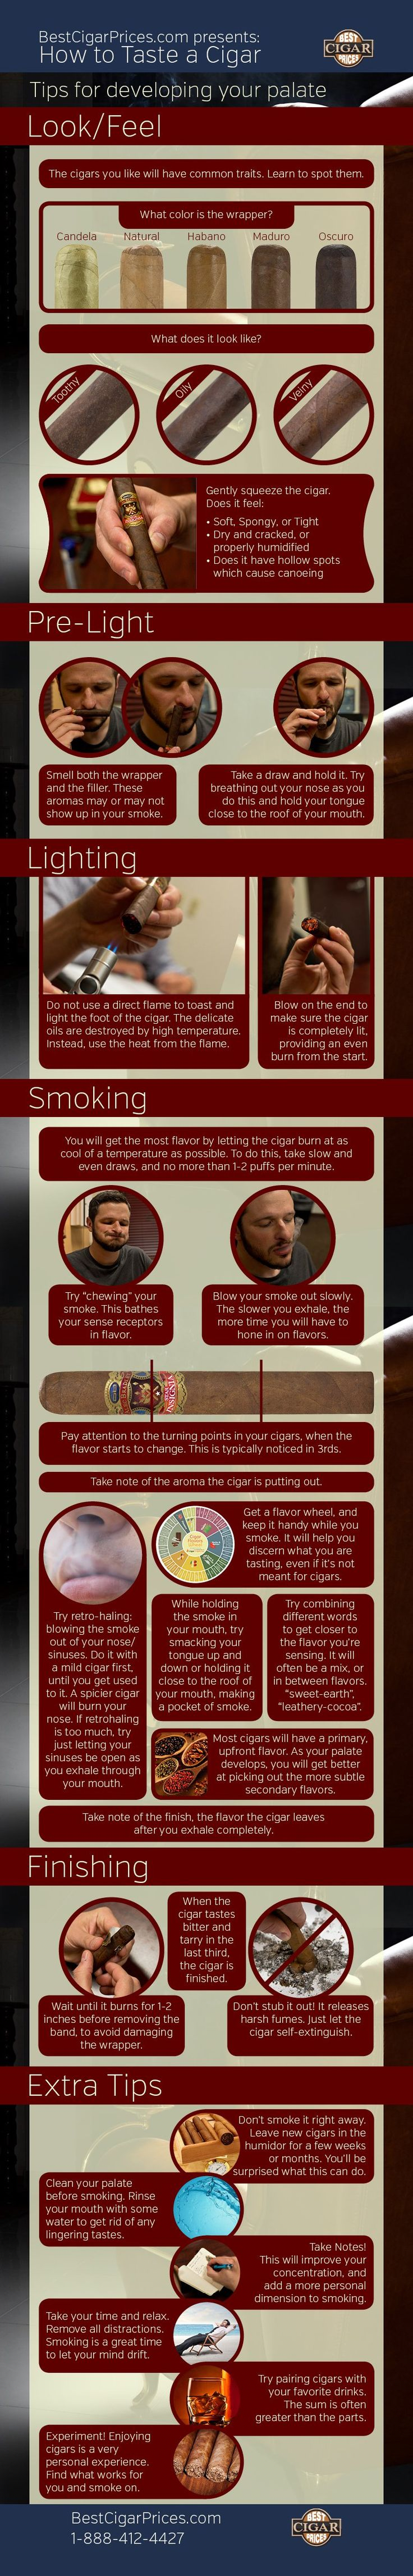 Download As mentioned in the above graphic, one very useful tool for identifying the flavors of a cigar is a flavor wheel. These helpful char